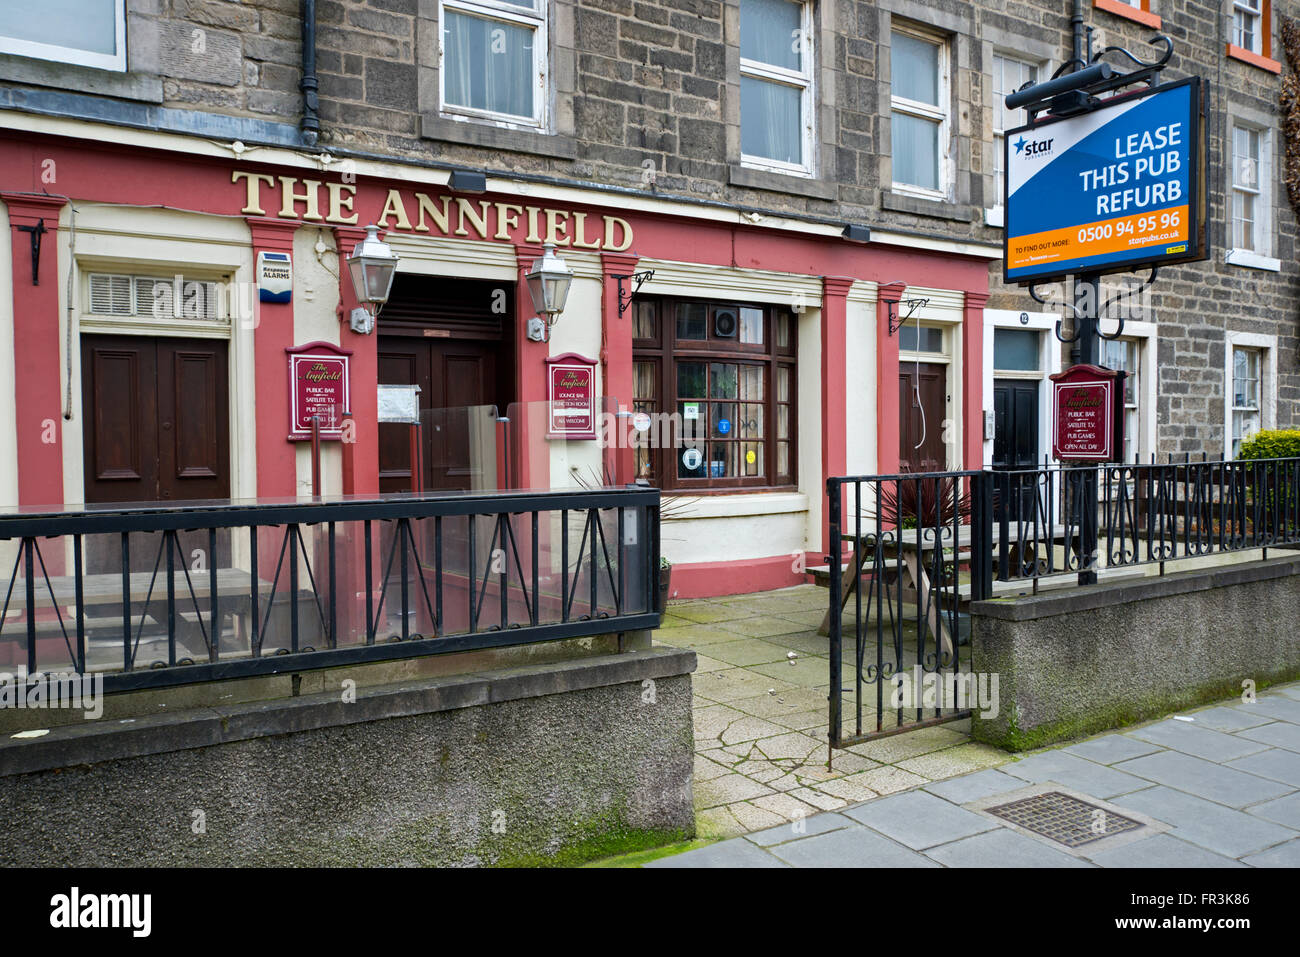 'Lease this pub' sign outside a public house in Edinburgh. - Stock Image